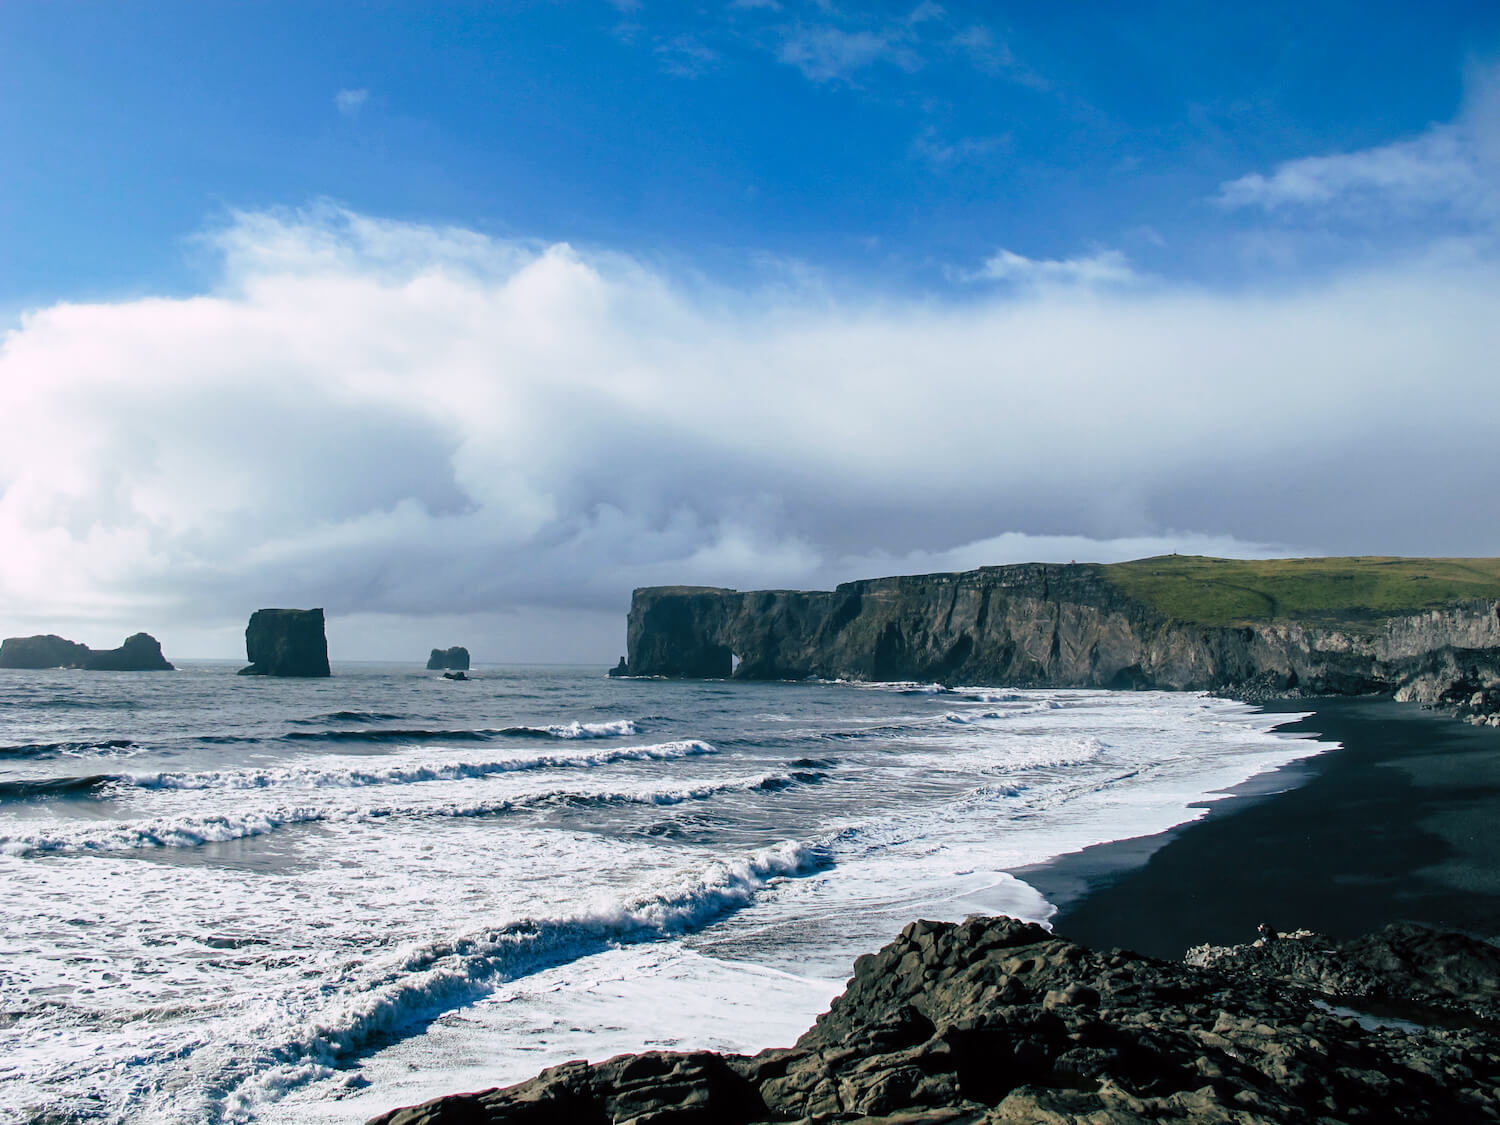 Rocky cliffs and ocean waves on the coast of Iceland